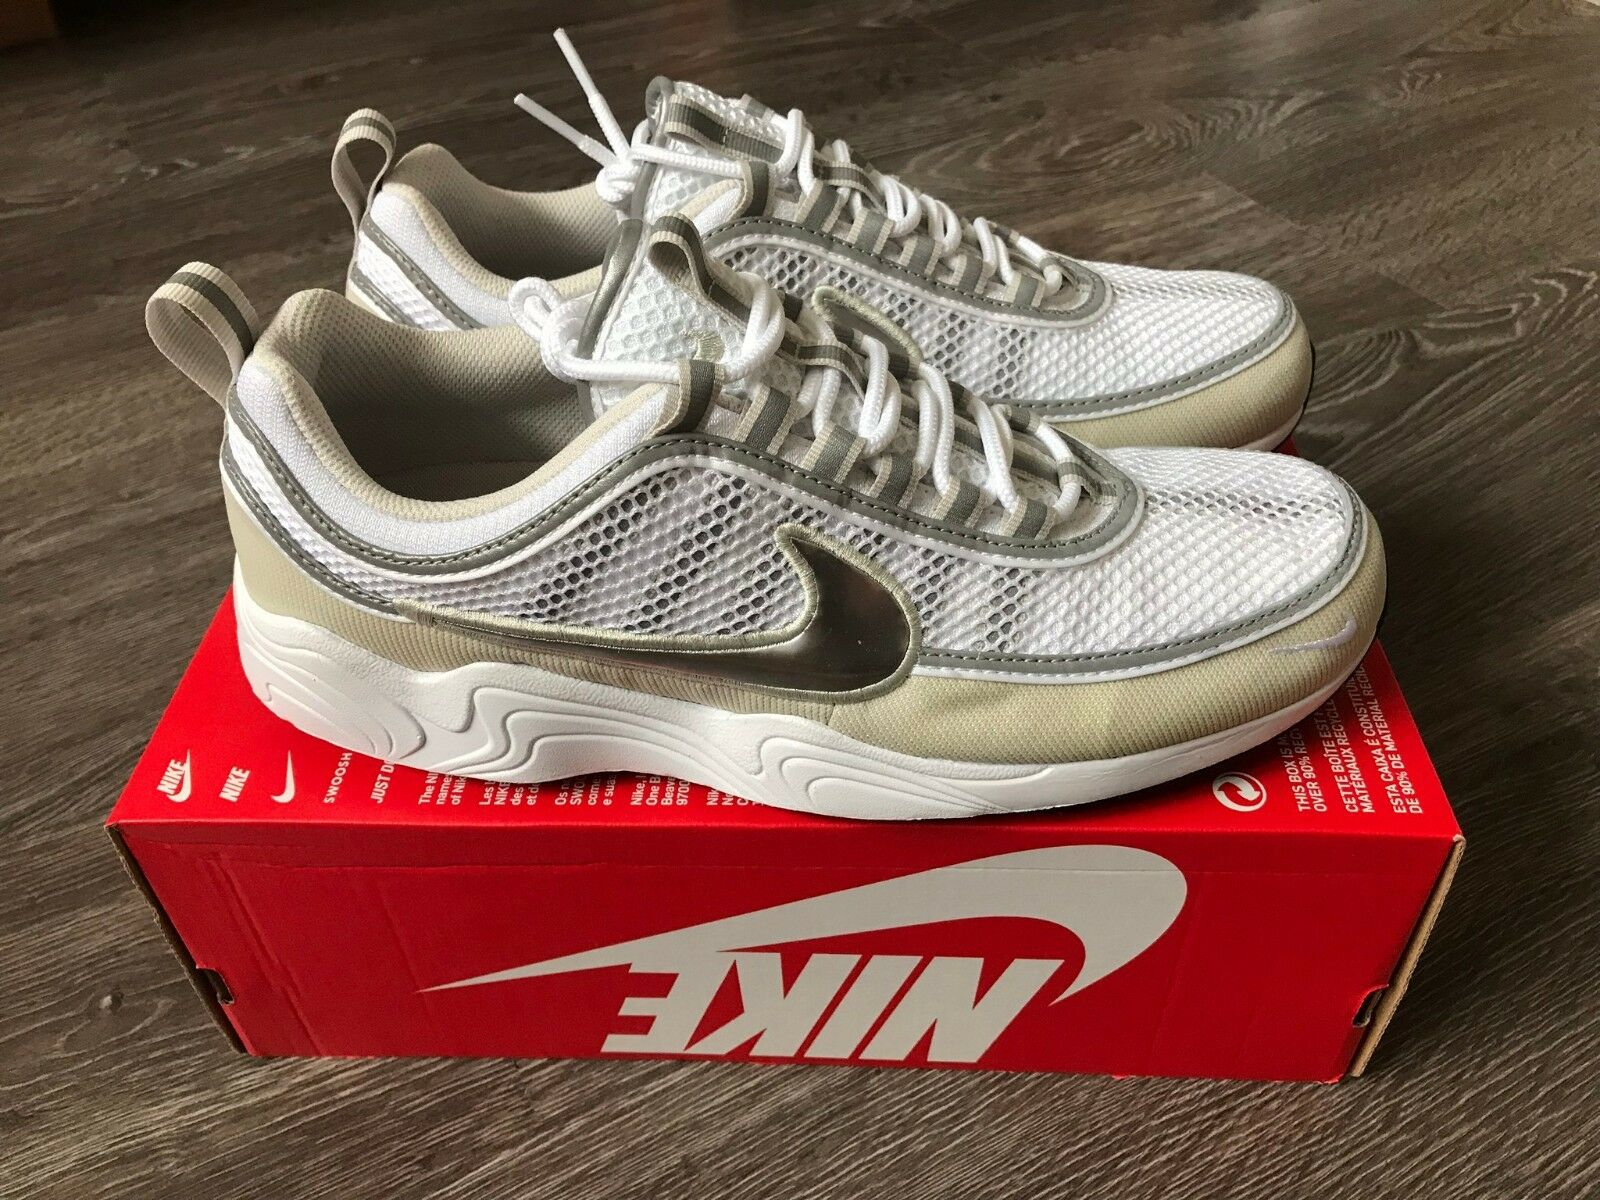 Nike Air Grey Zoom Spiridon '16 White Metallic Silver Bone Grey Air 926955-105 Men's 12 49a67b